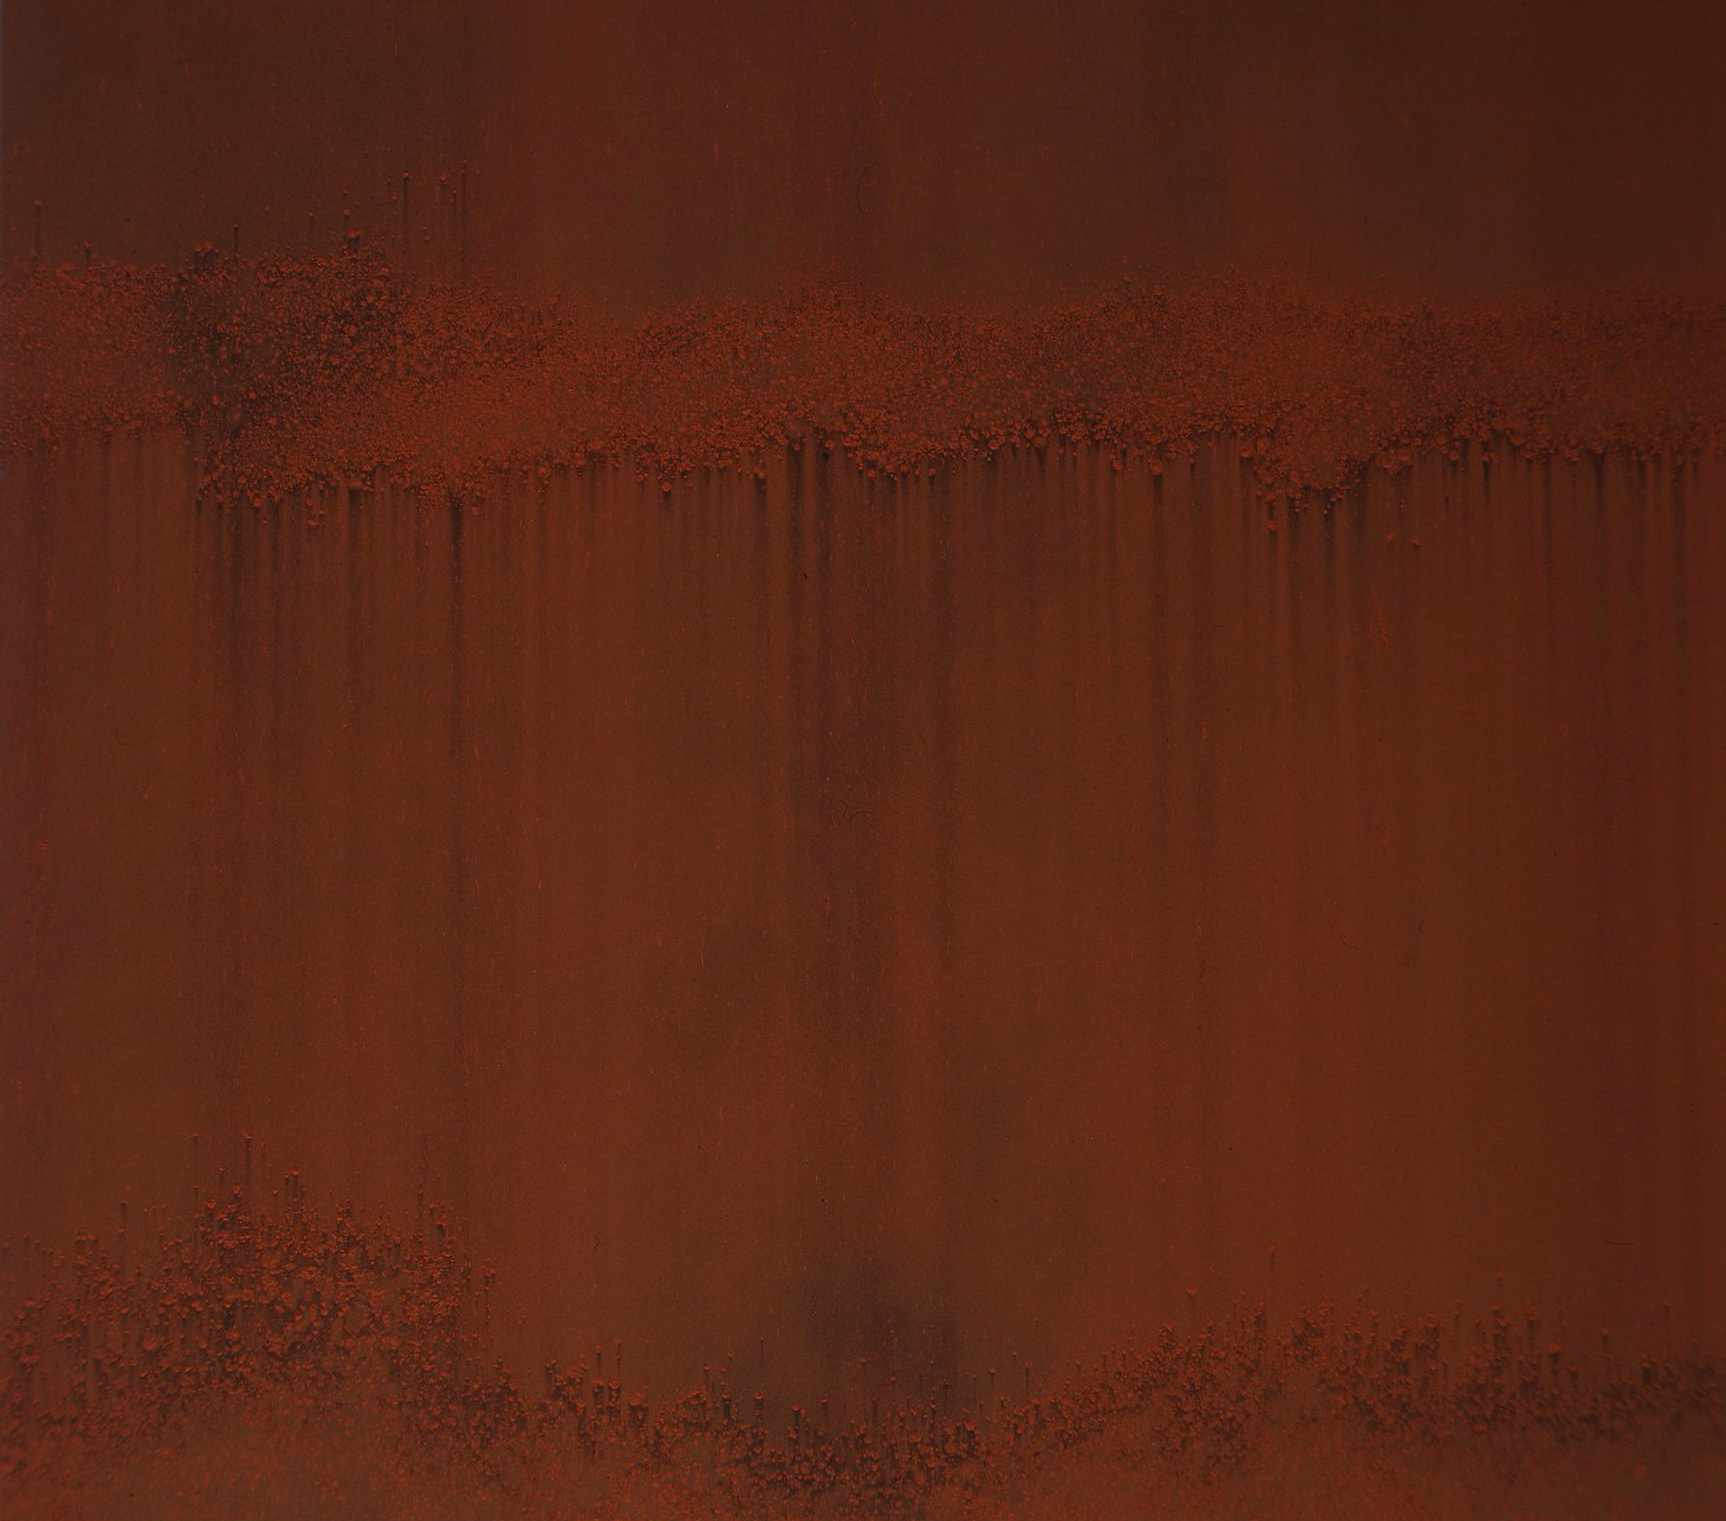 GATHERING (I)   detail  1999  burnt Sienna on carbon deposit  112.0 x 164.0 cm   (private collection UK)